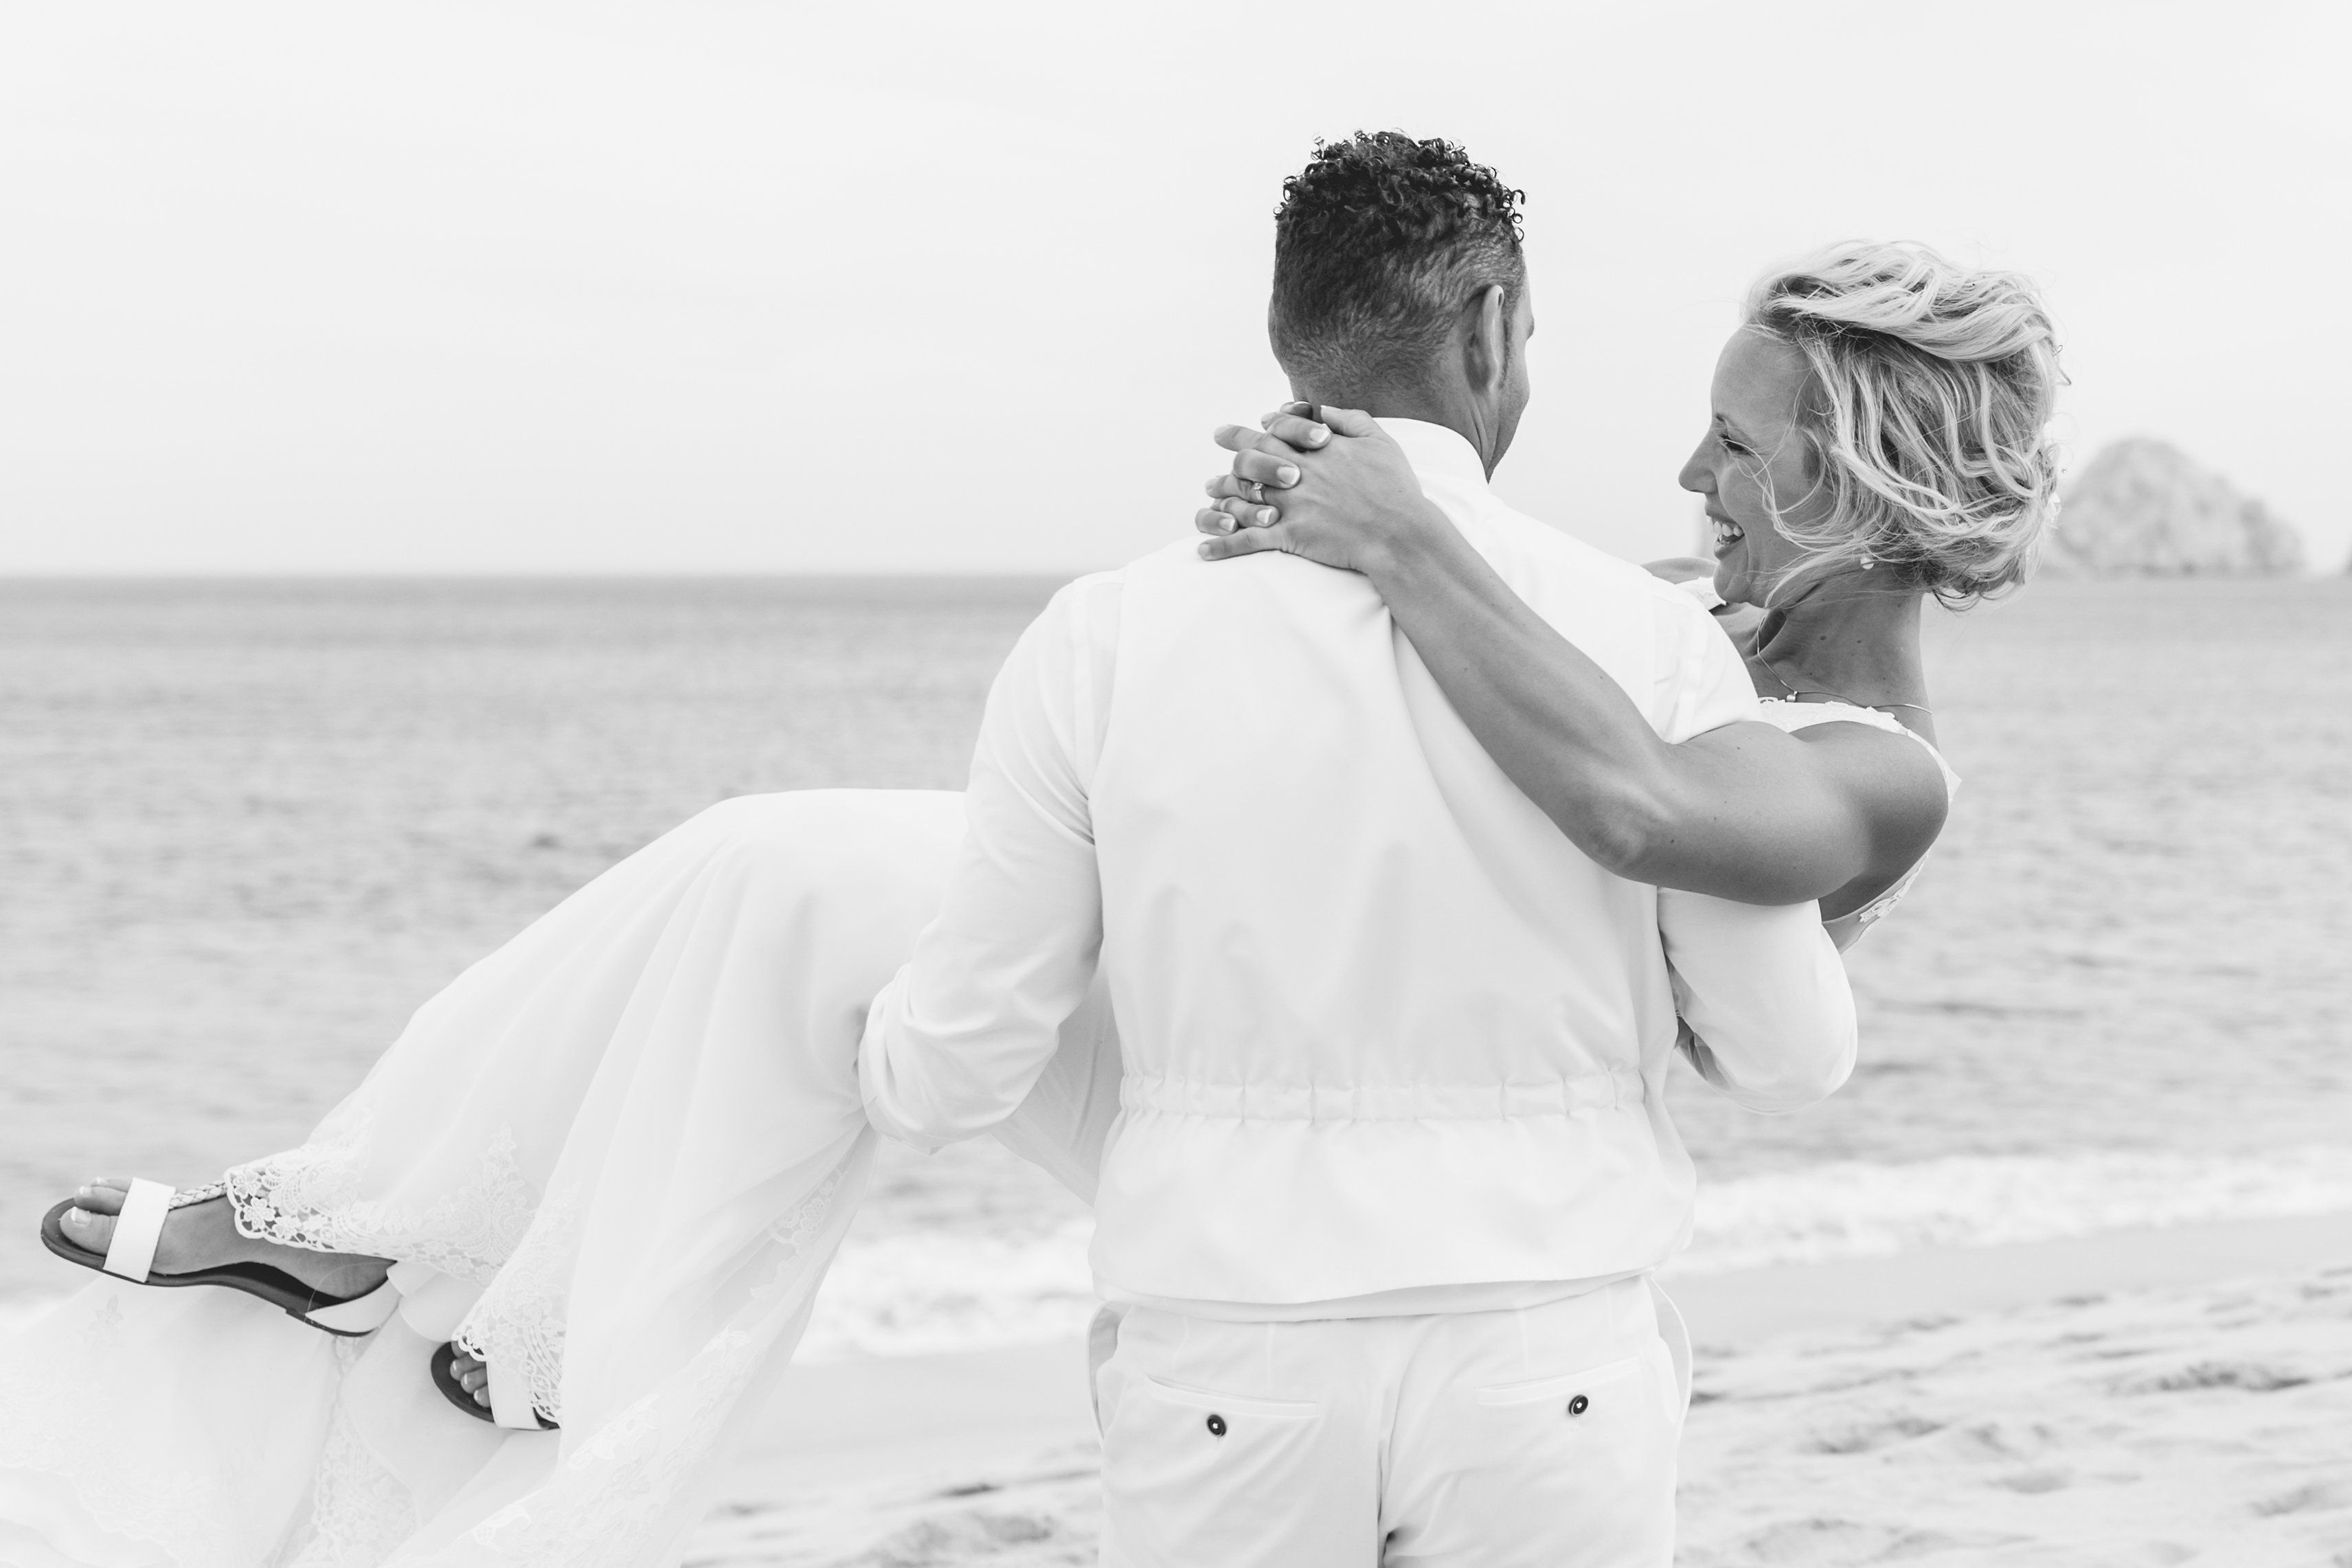 Cabo San Lucas wedding photographers. Inspiration for your